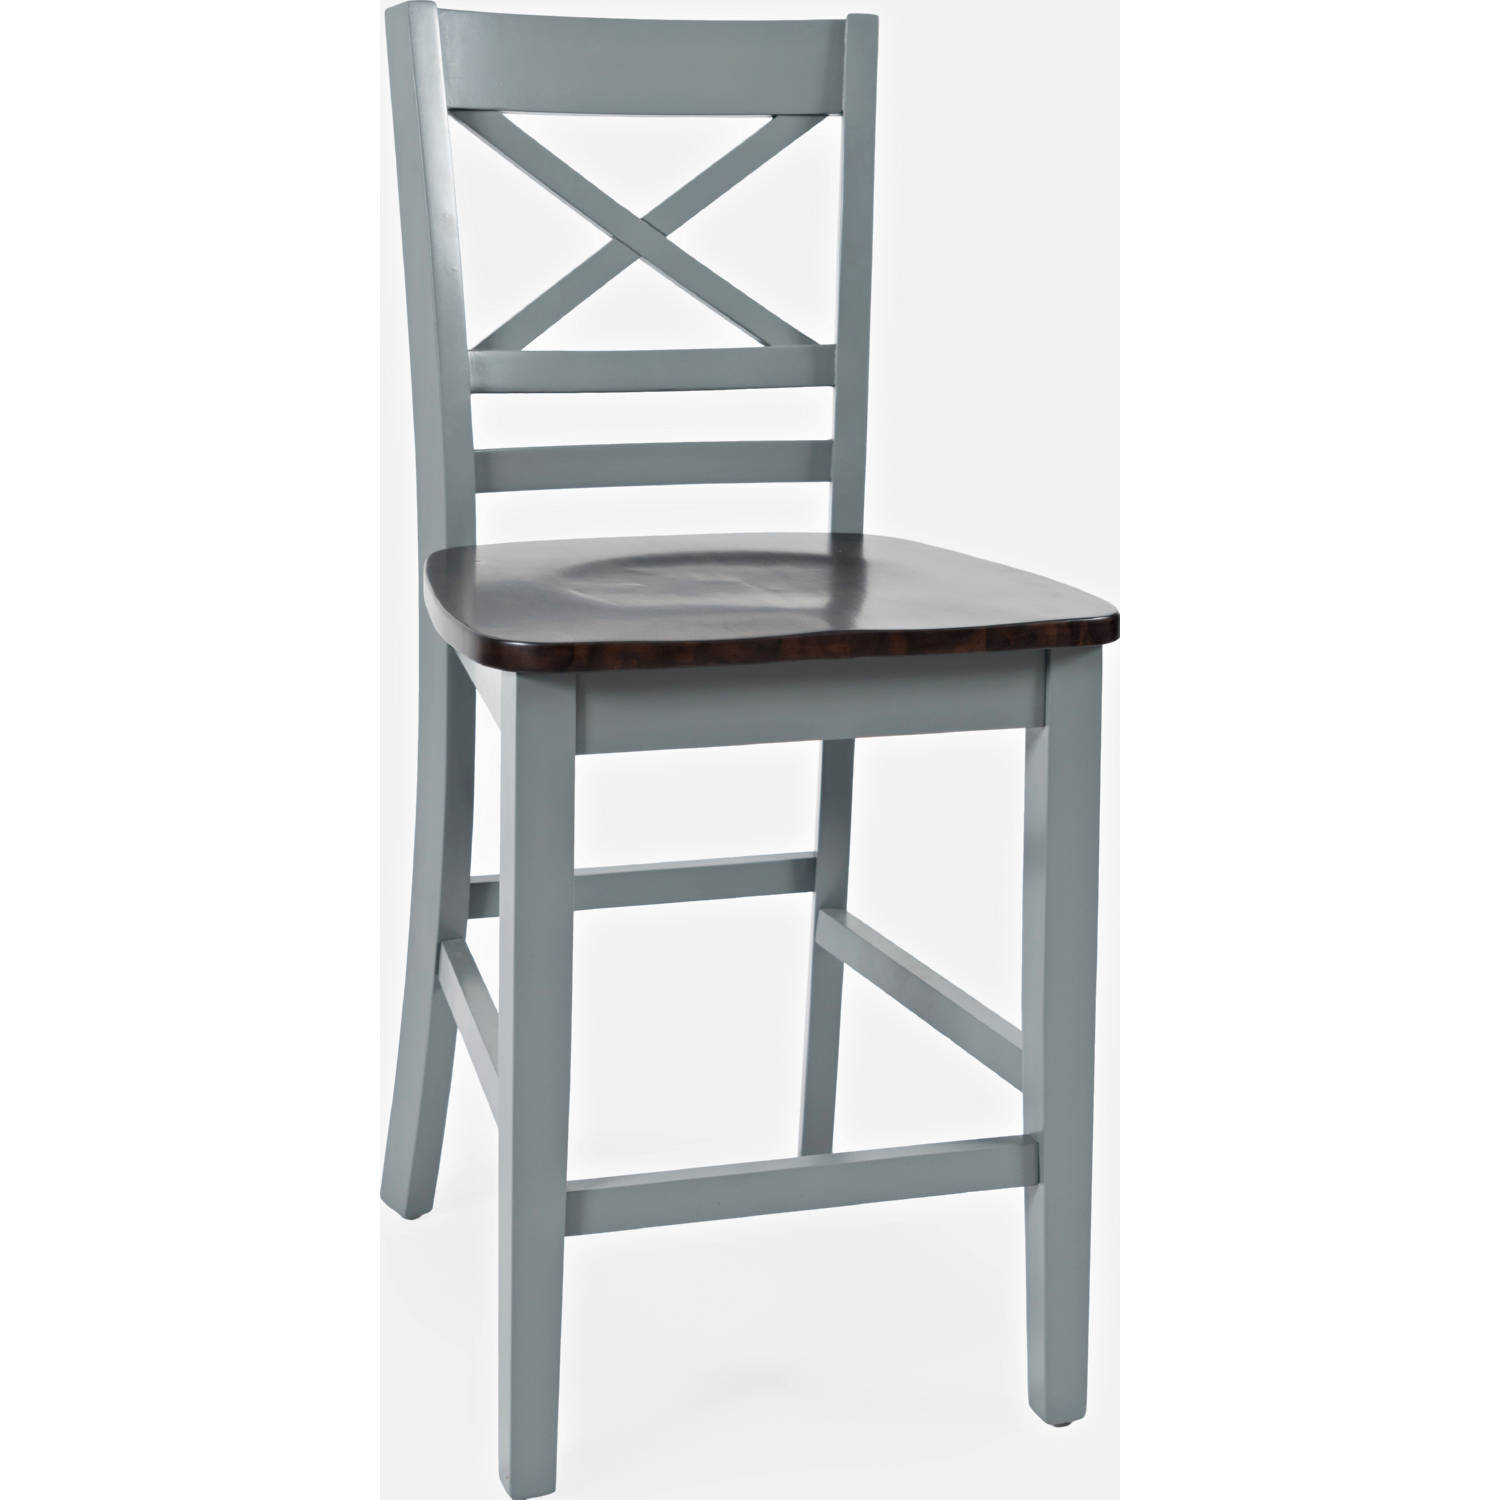 Prime Asbury Park X Back Counter Stool In Grey Brown Set Of 2 By Jofran Unemploymentrelief Wooden Chair Designs For Living Room Unemploymentrelieforg